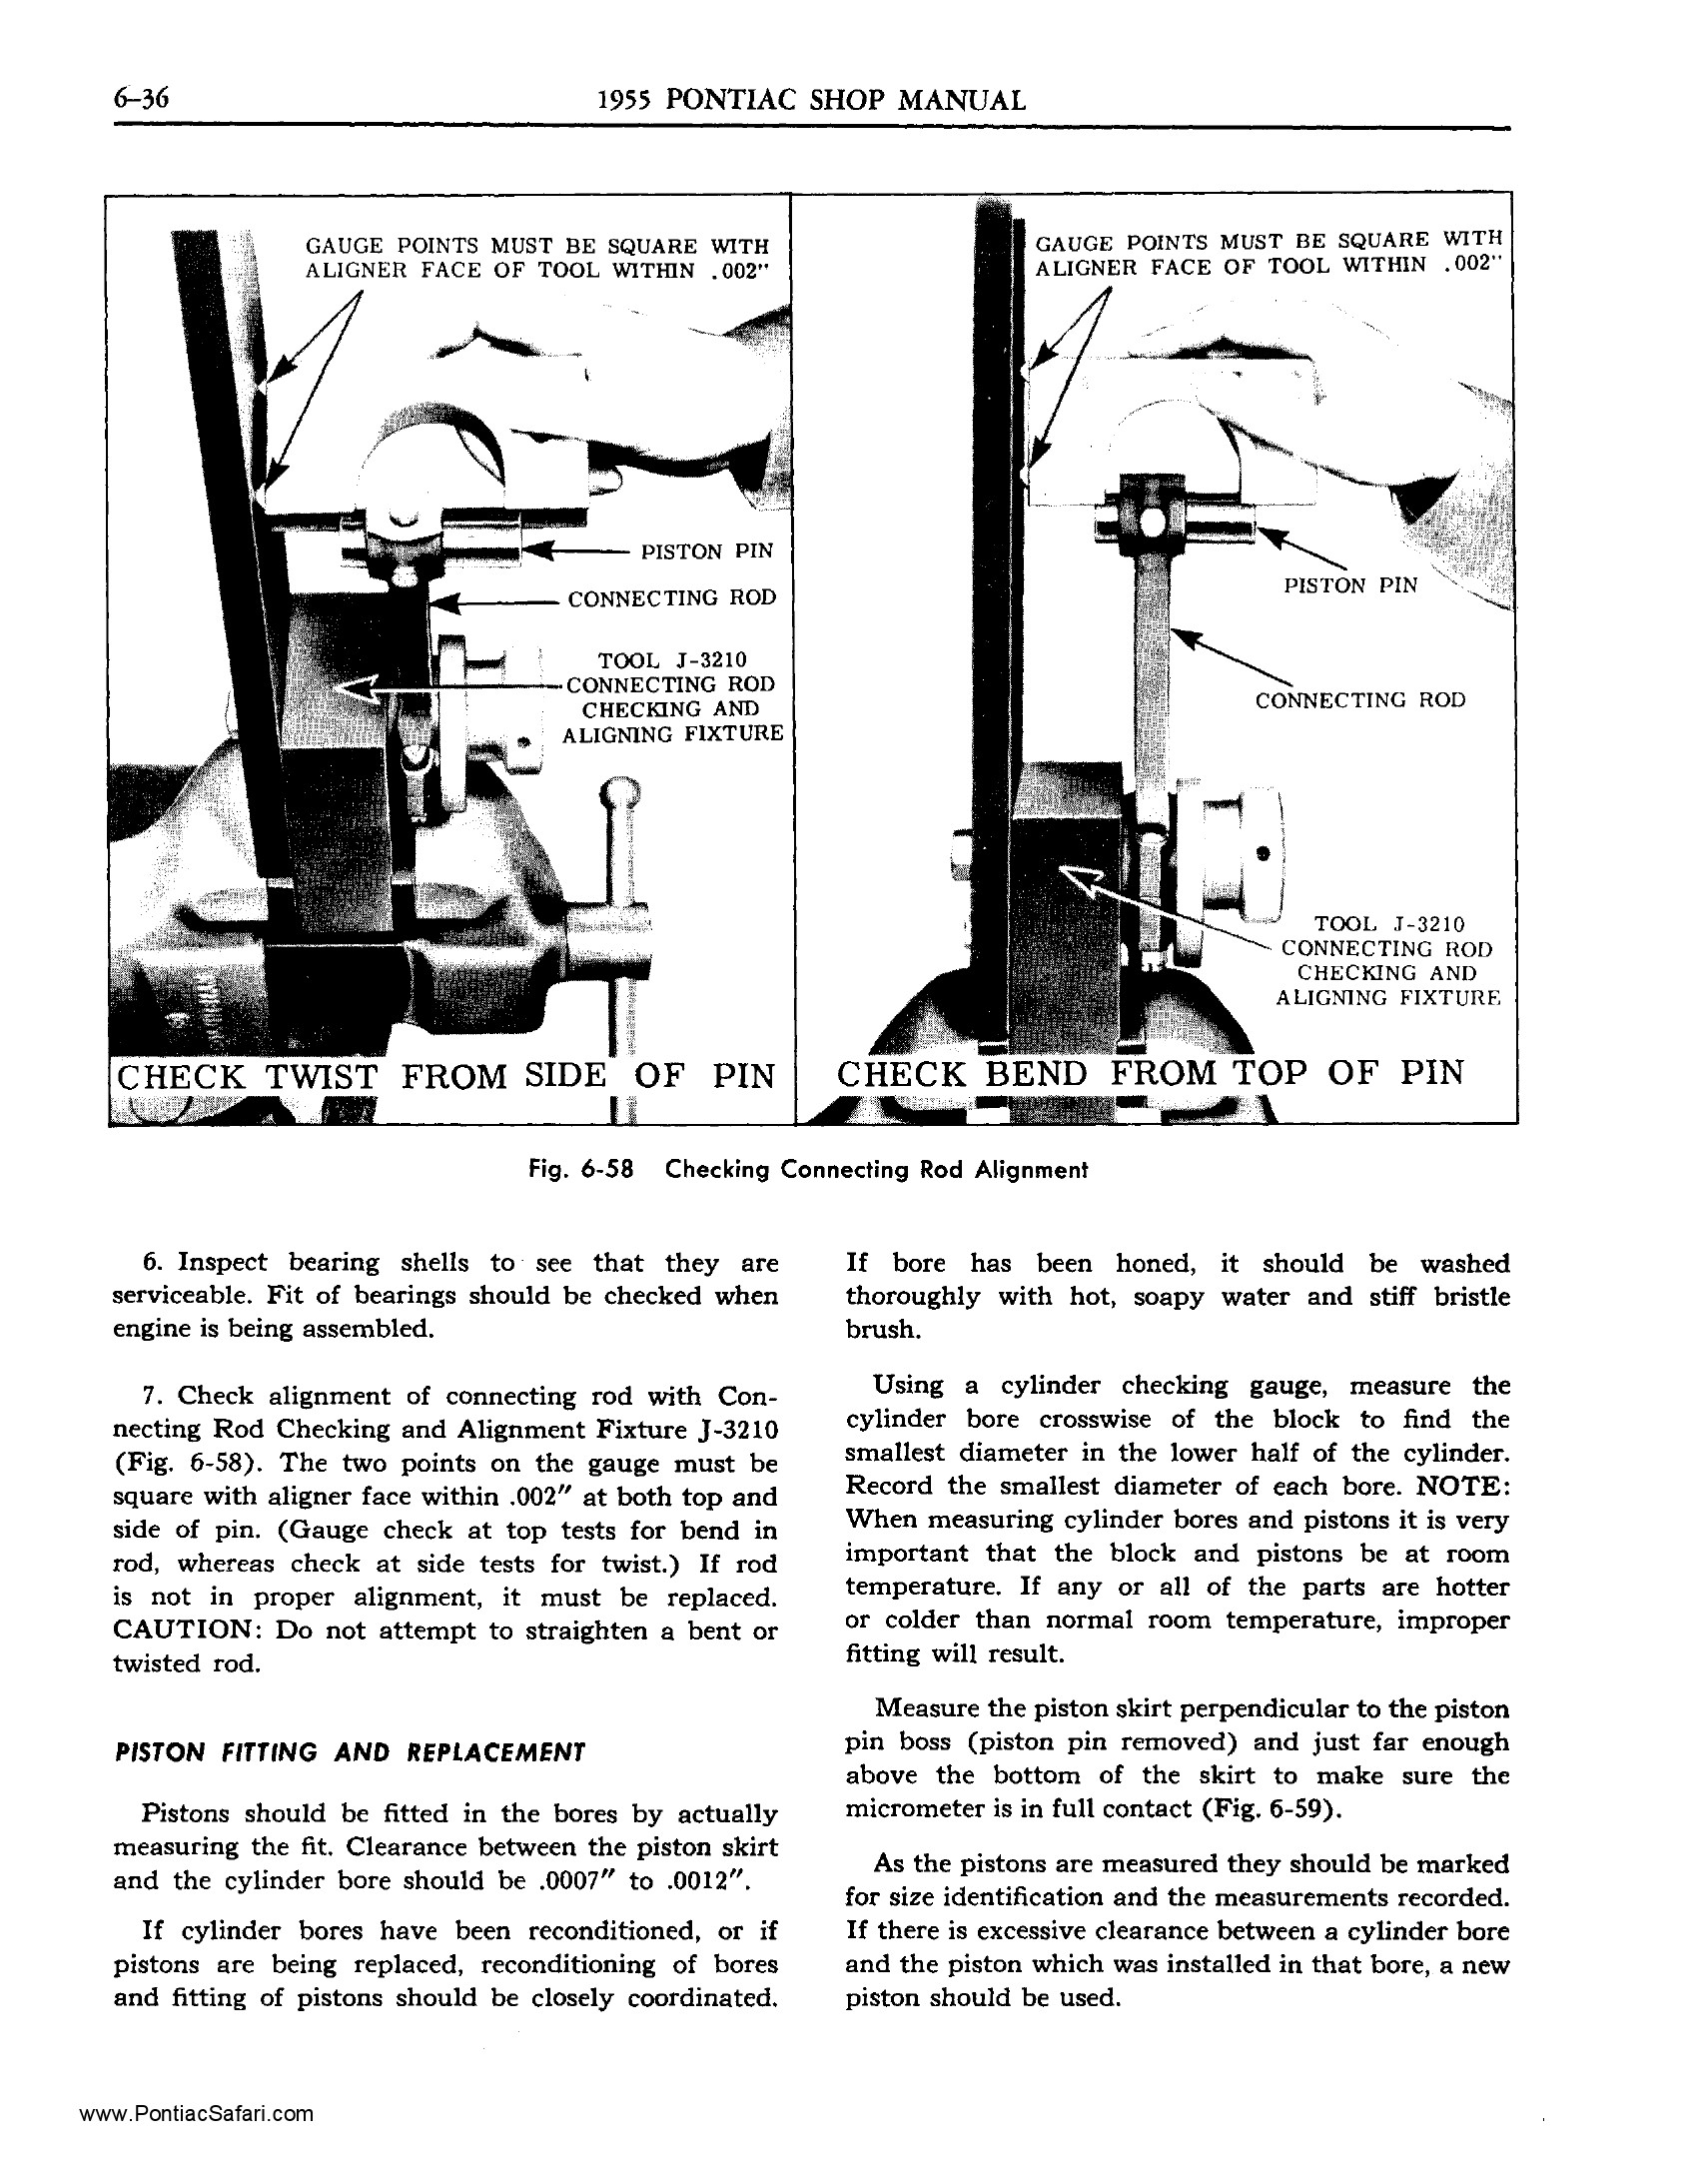 1955 Pontiac Shop Manual- Engine Mechanical Page 37 of 53